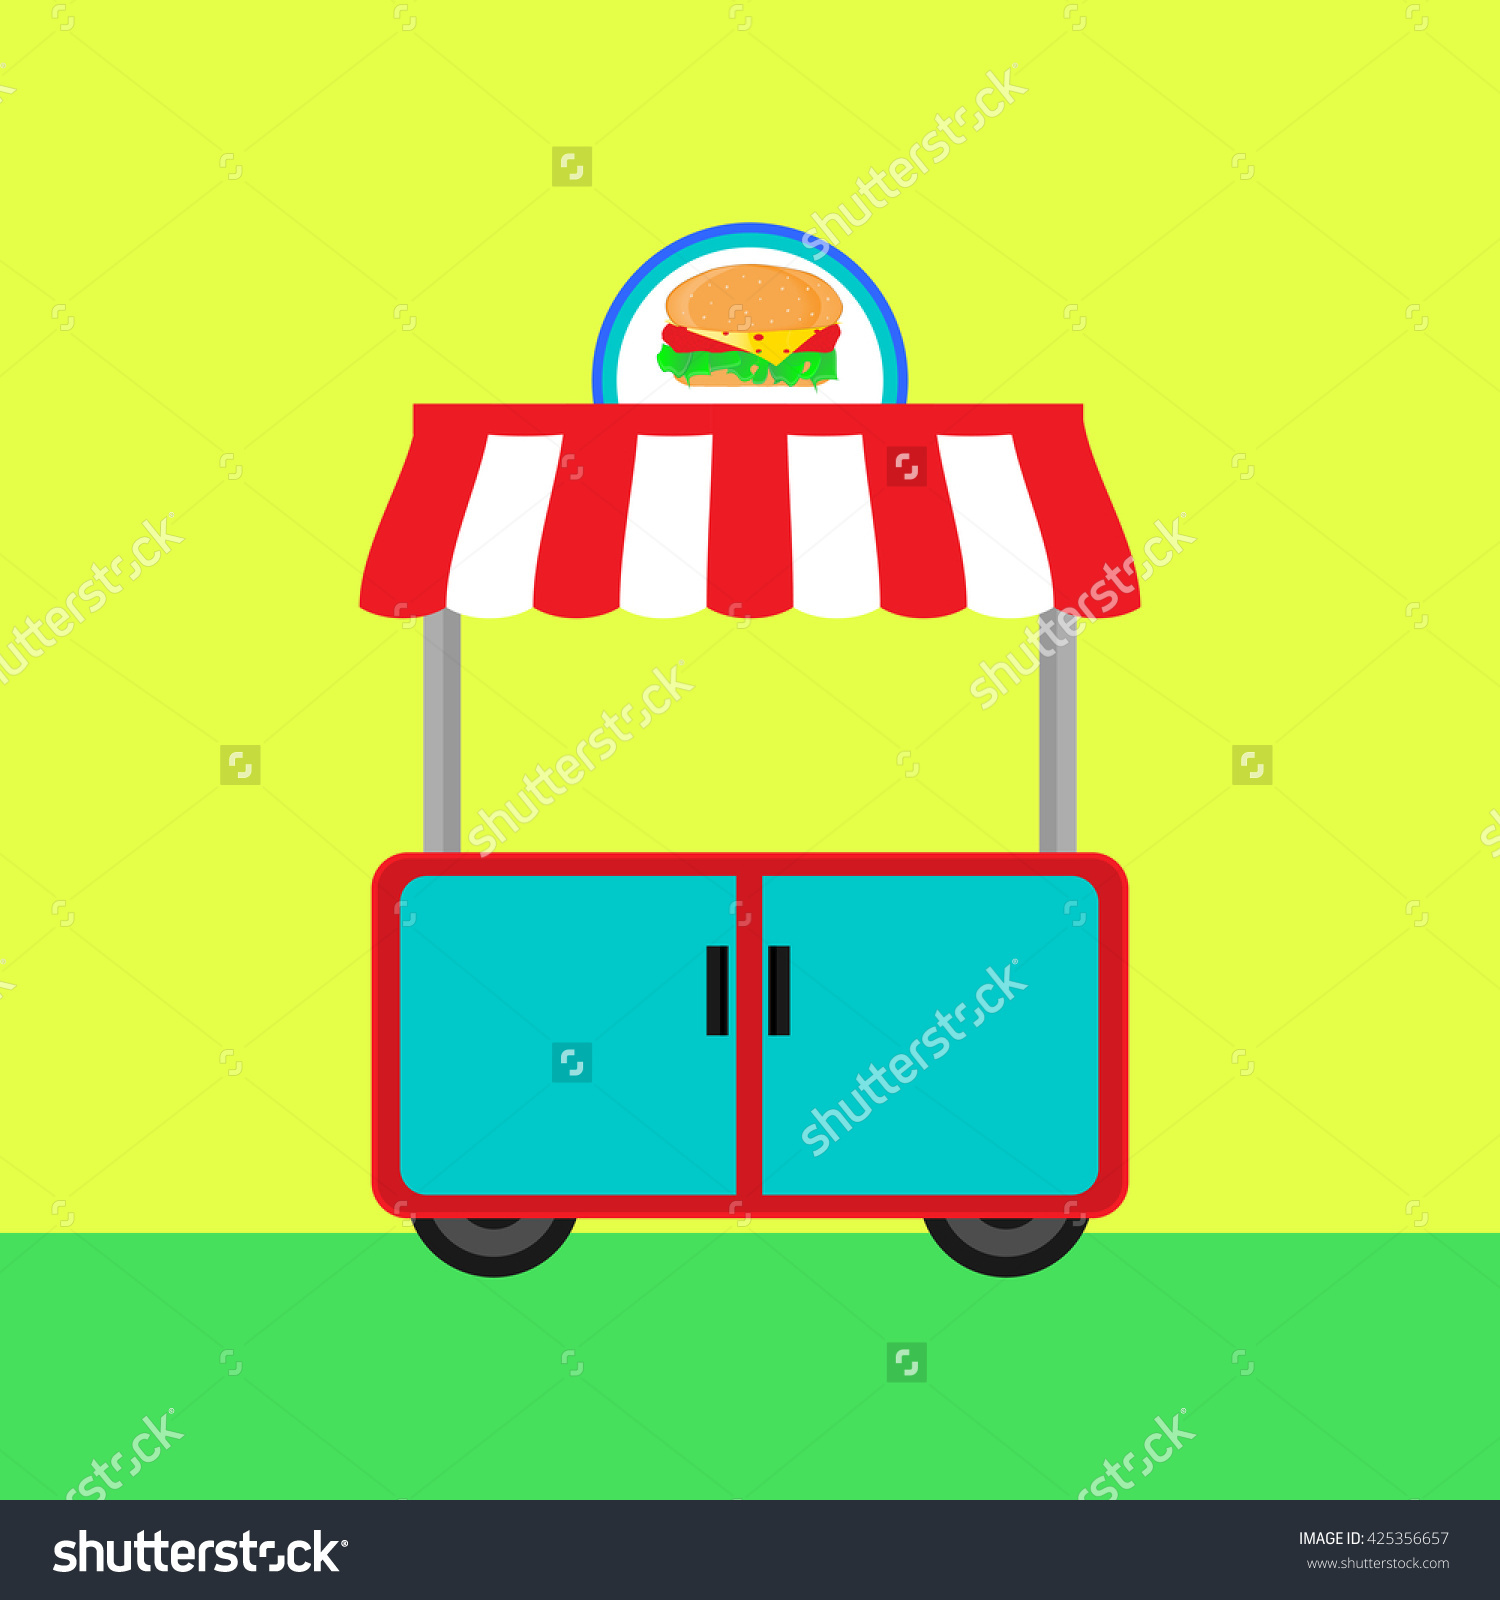 Stall With A Sign. Fast Food Street Trading Concept. Vector.